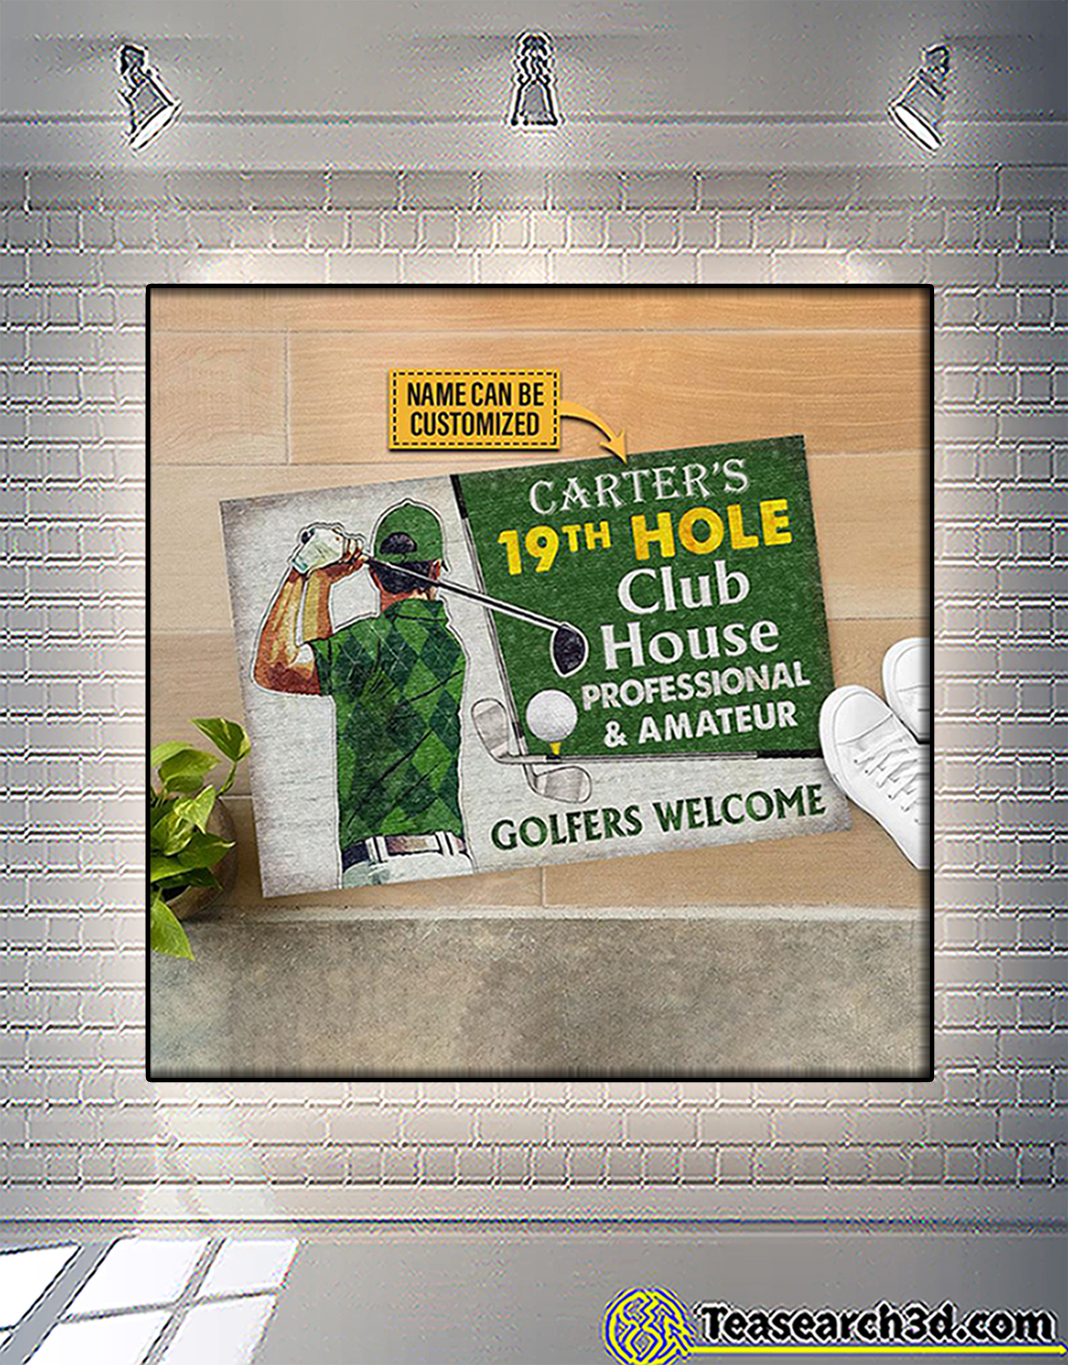 Personalized custom name golf 19th hole club house professional and amateur doormat